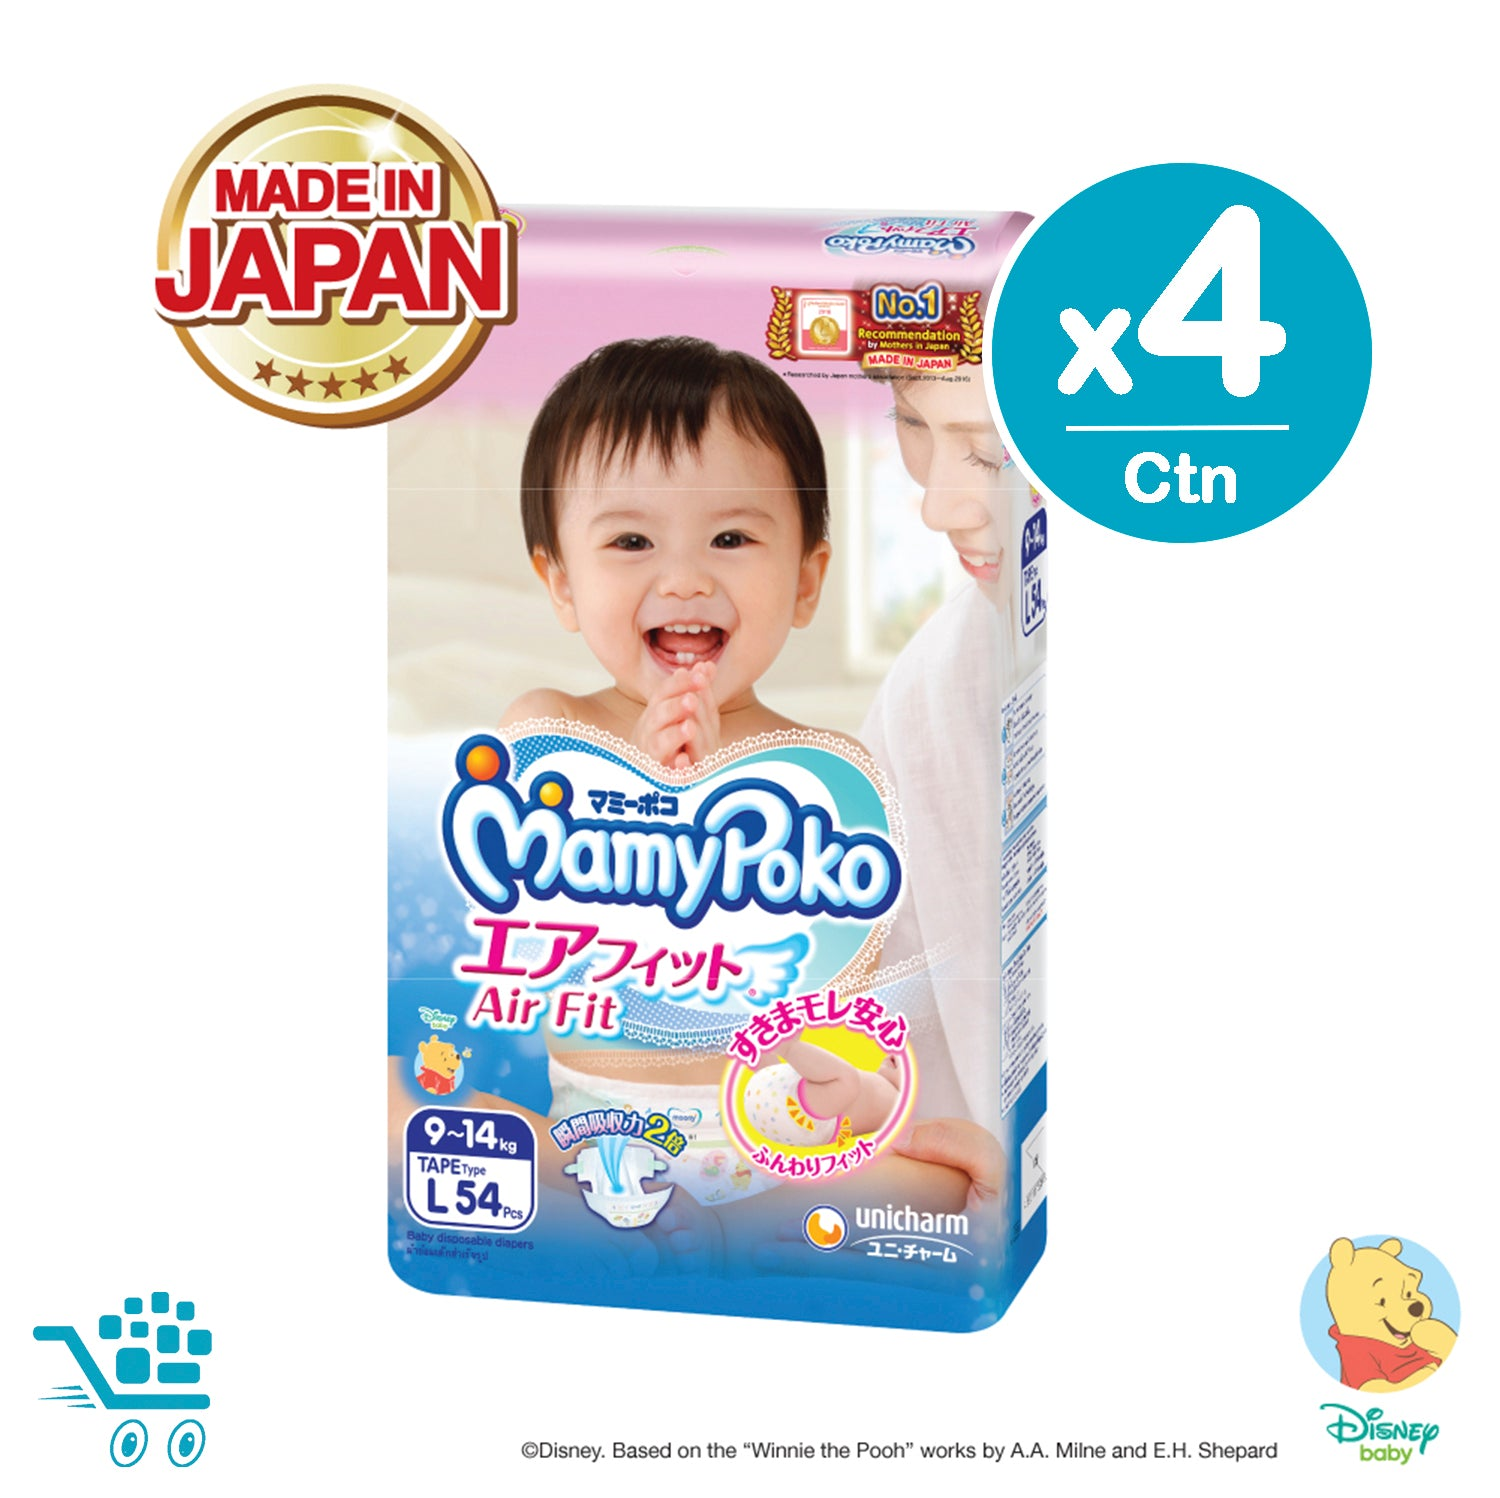 Mamypoko Air Fit Tape Type - L 54 pieces x 4 packs JPQ